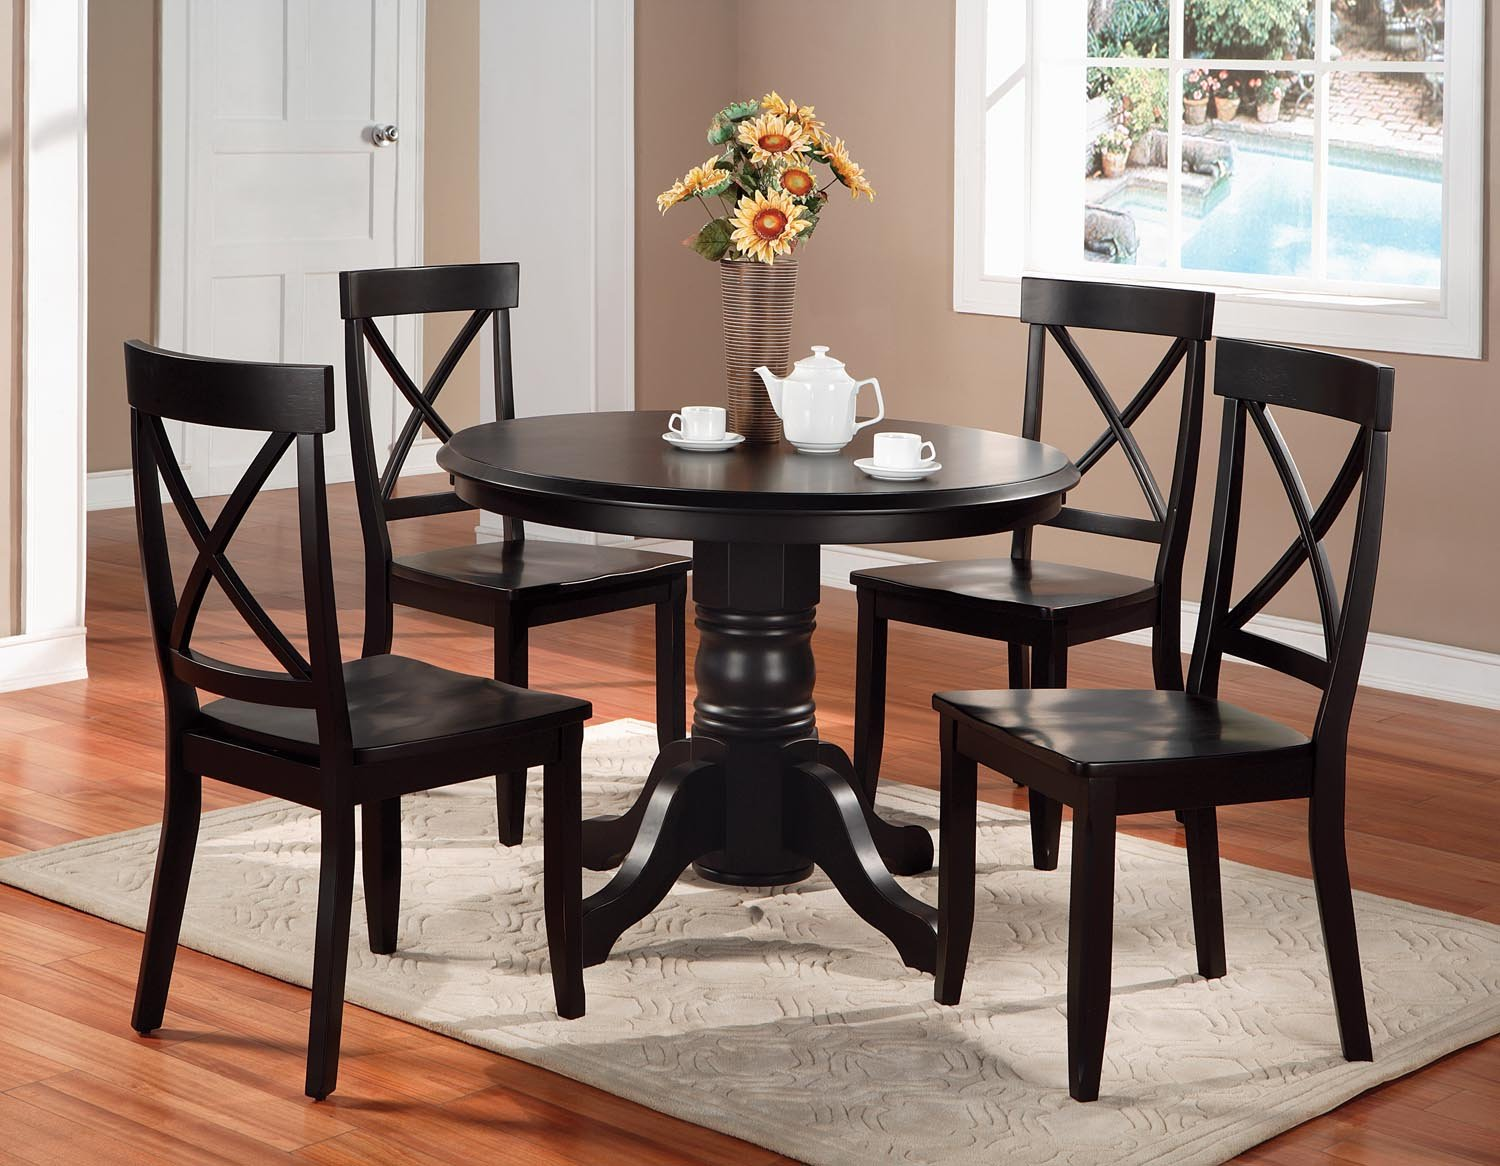 Amazon.com: Home Styles 5178 30 Round Pedestal Dining Table, Black Finish:  Kitchen U0026 Dining